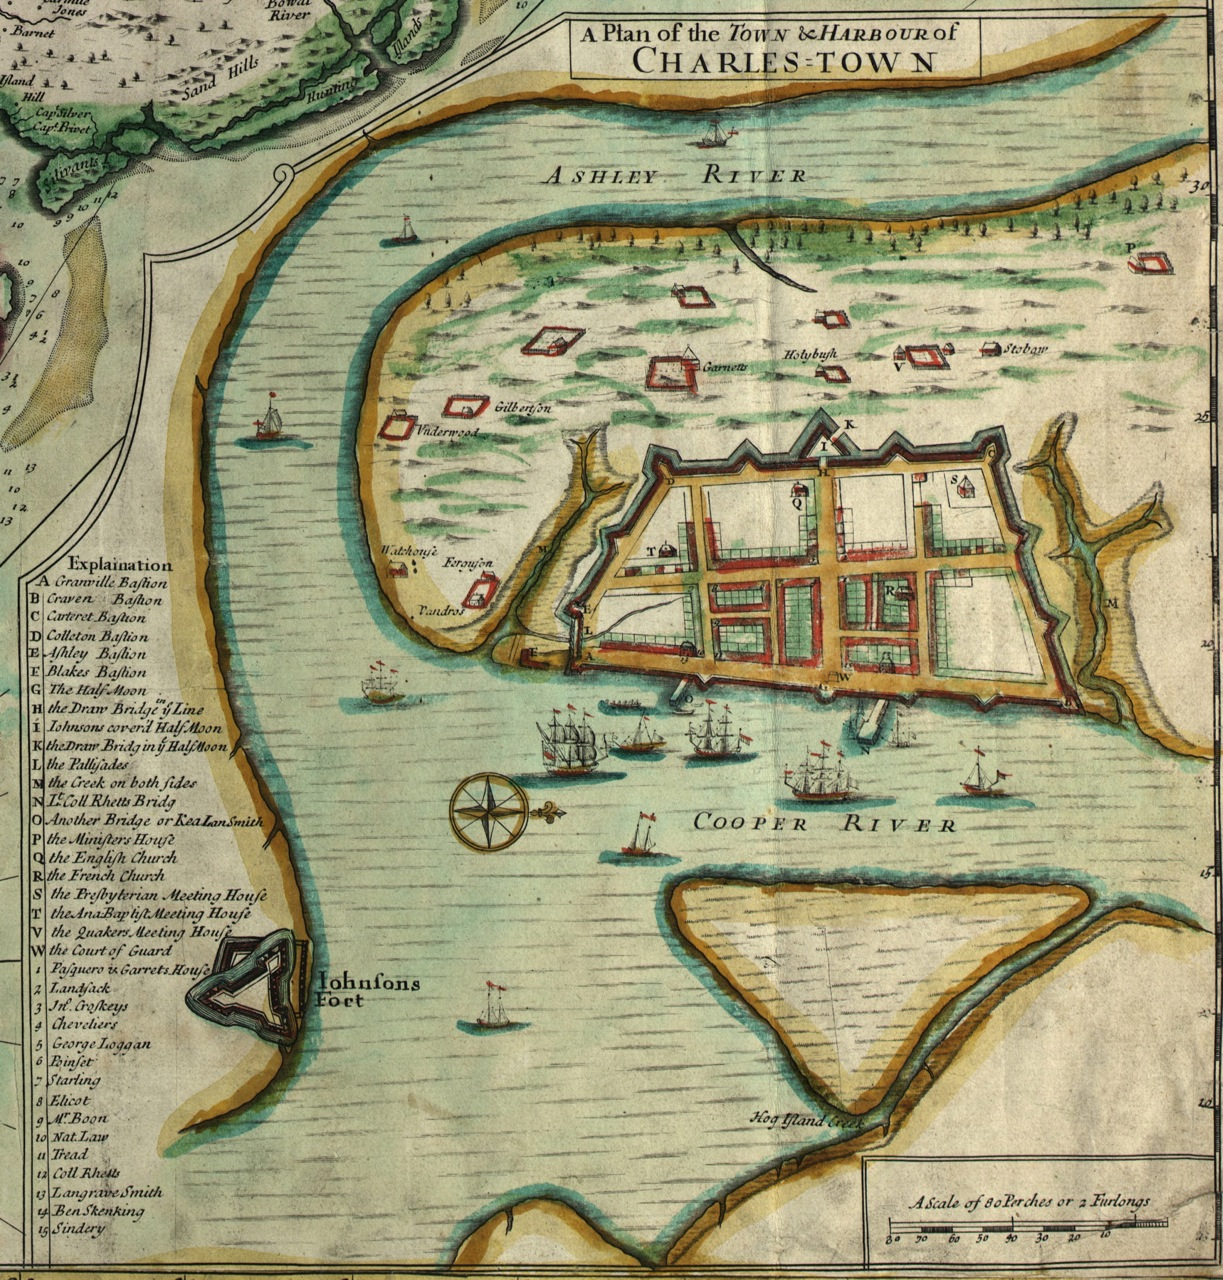 Viewing the image of full Crisp Map above, you'll notice that the image of  Charleston (Charles Town) is just one of several small insets, ...